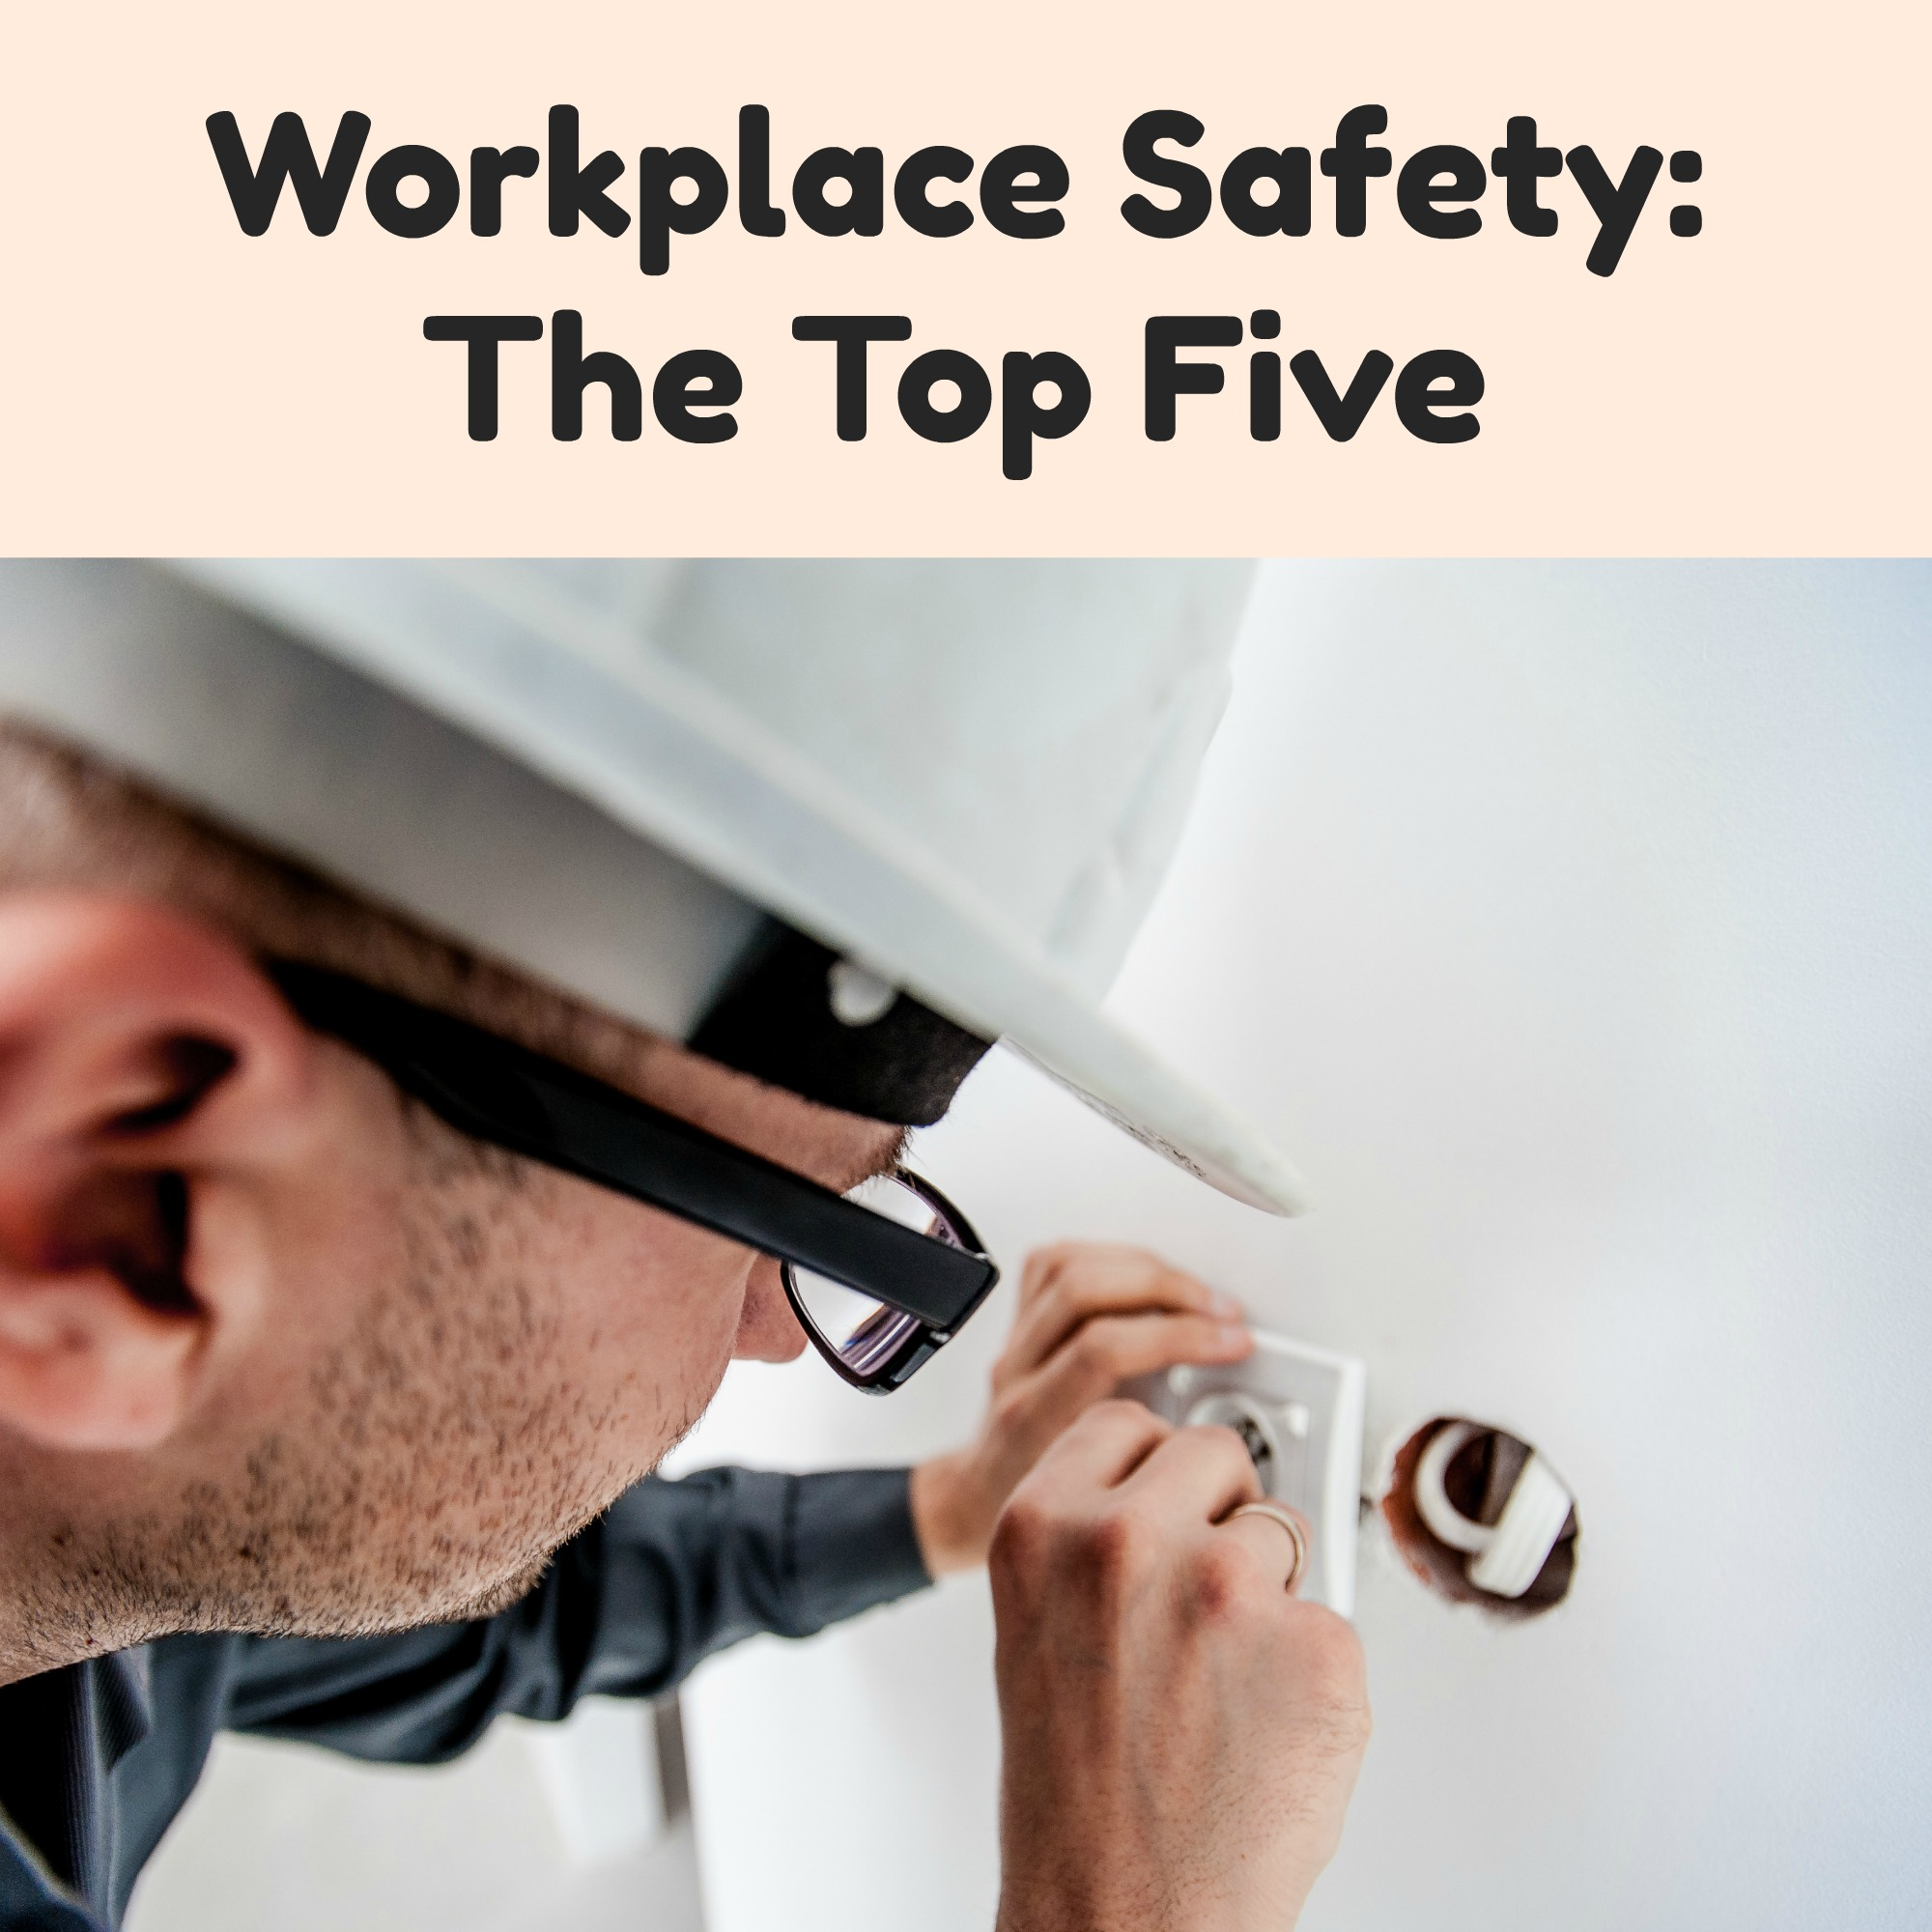 Workplace Safety – The Top Five